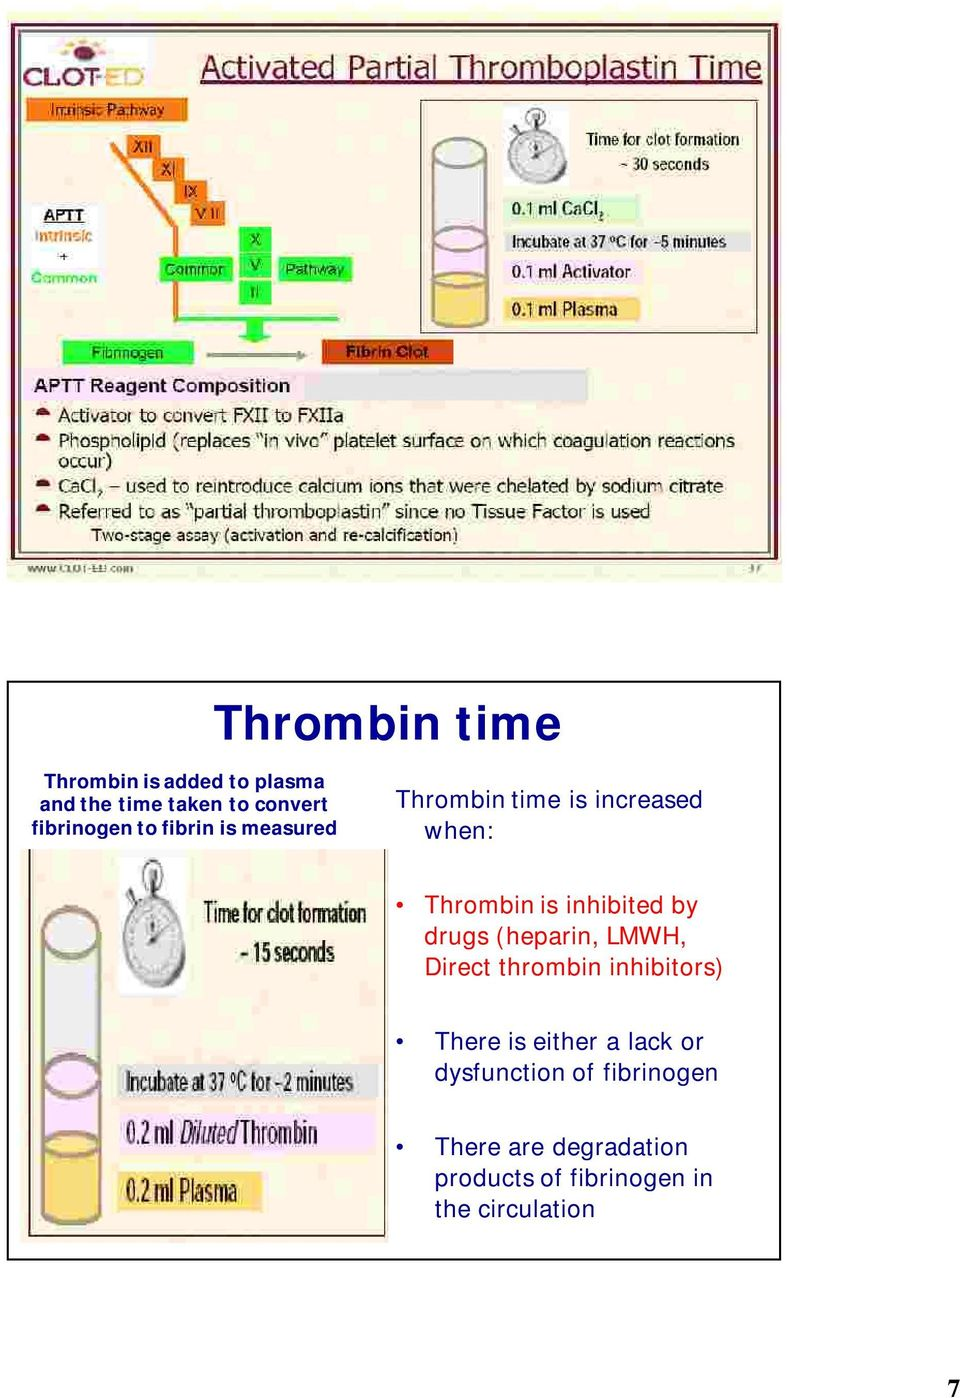 drugs (heparin, LMWH, Direct thrombin inhibitors) There is either a lack or